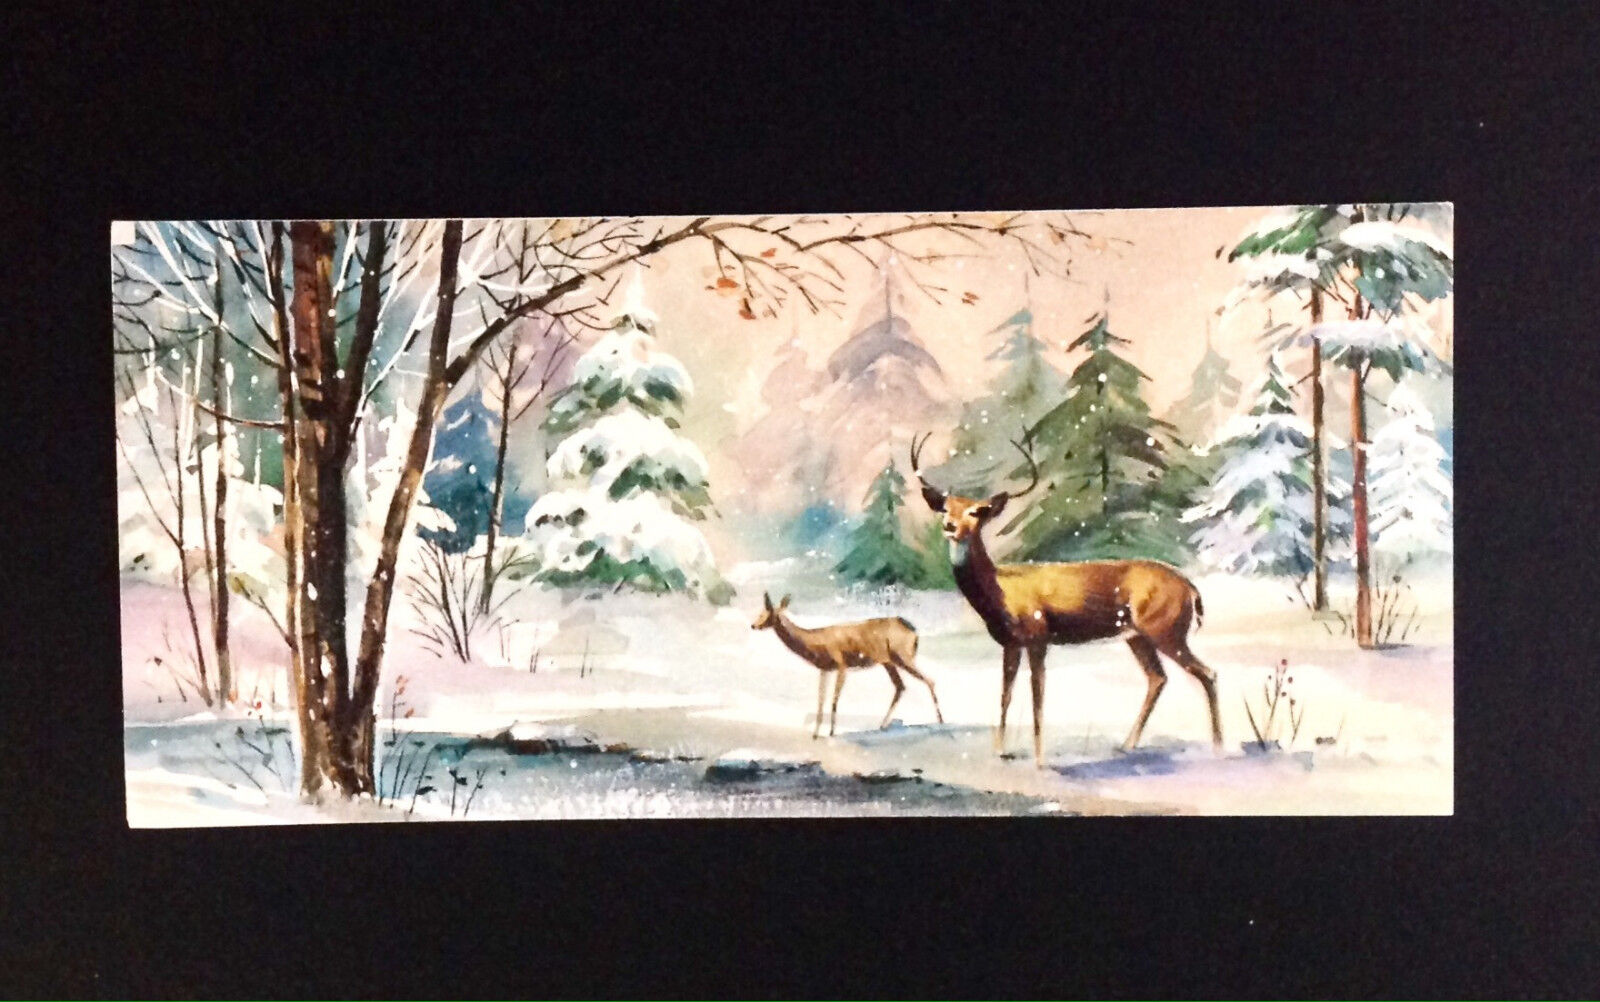 Vintage greeting cards paper collectibles pink sky deer forest glen blue snow trees vintage mid century xmas card american kristyandbryce Choice Image